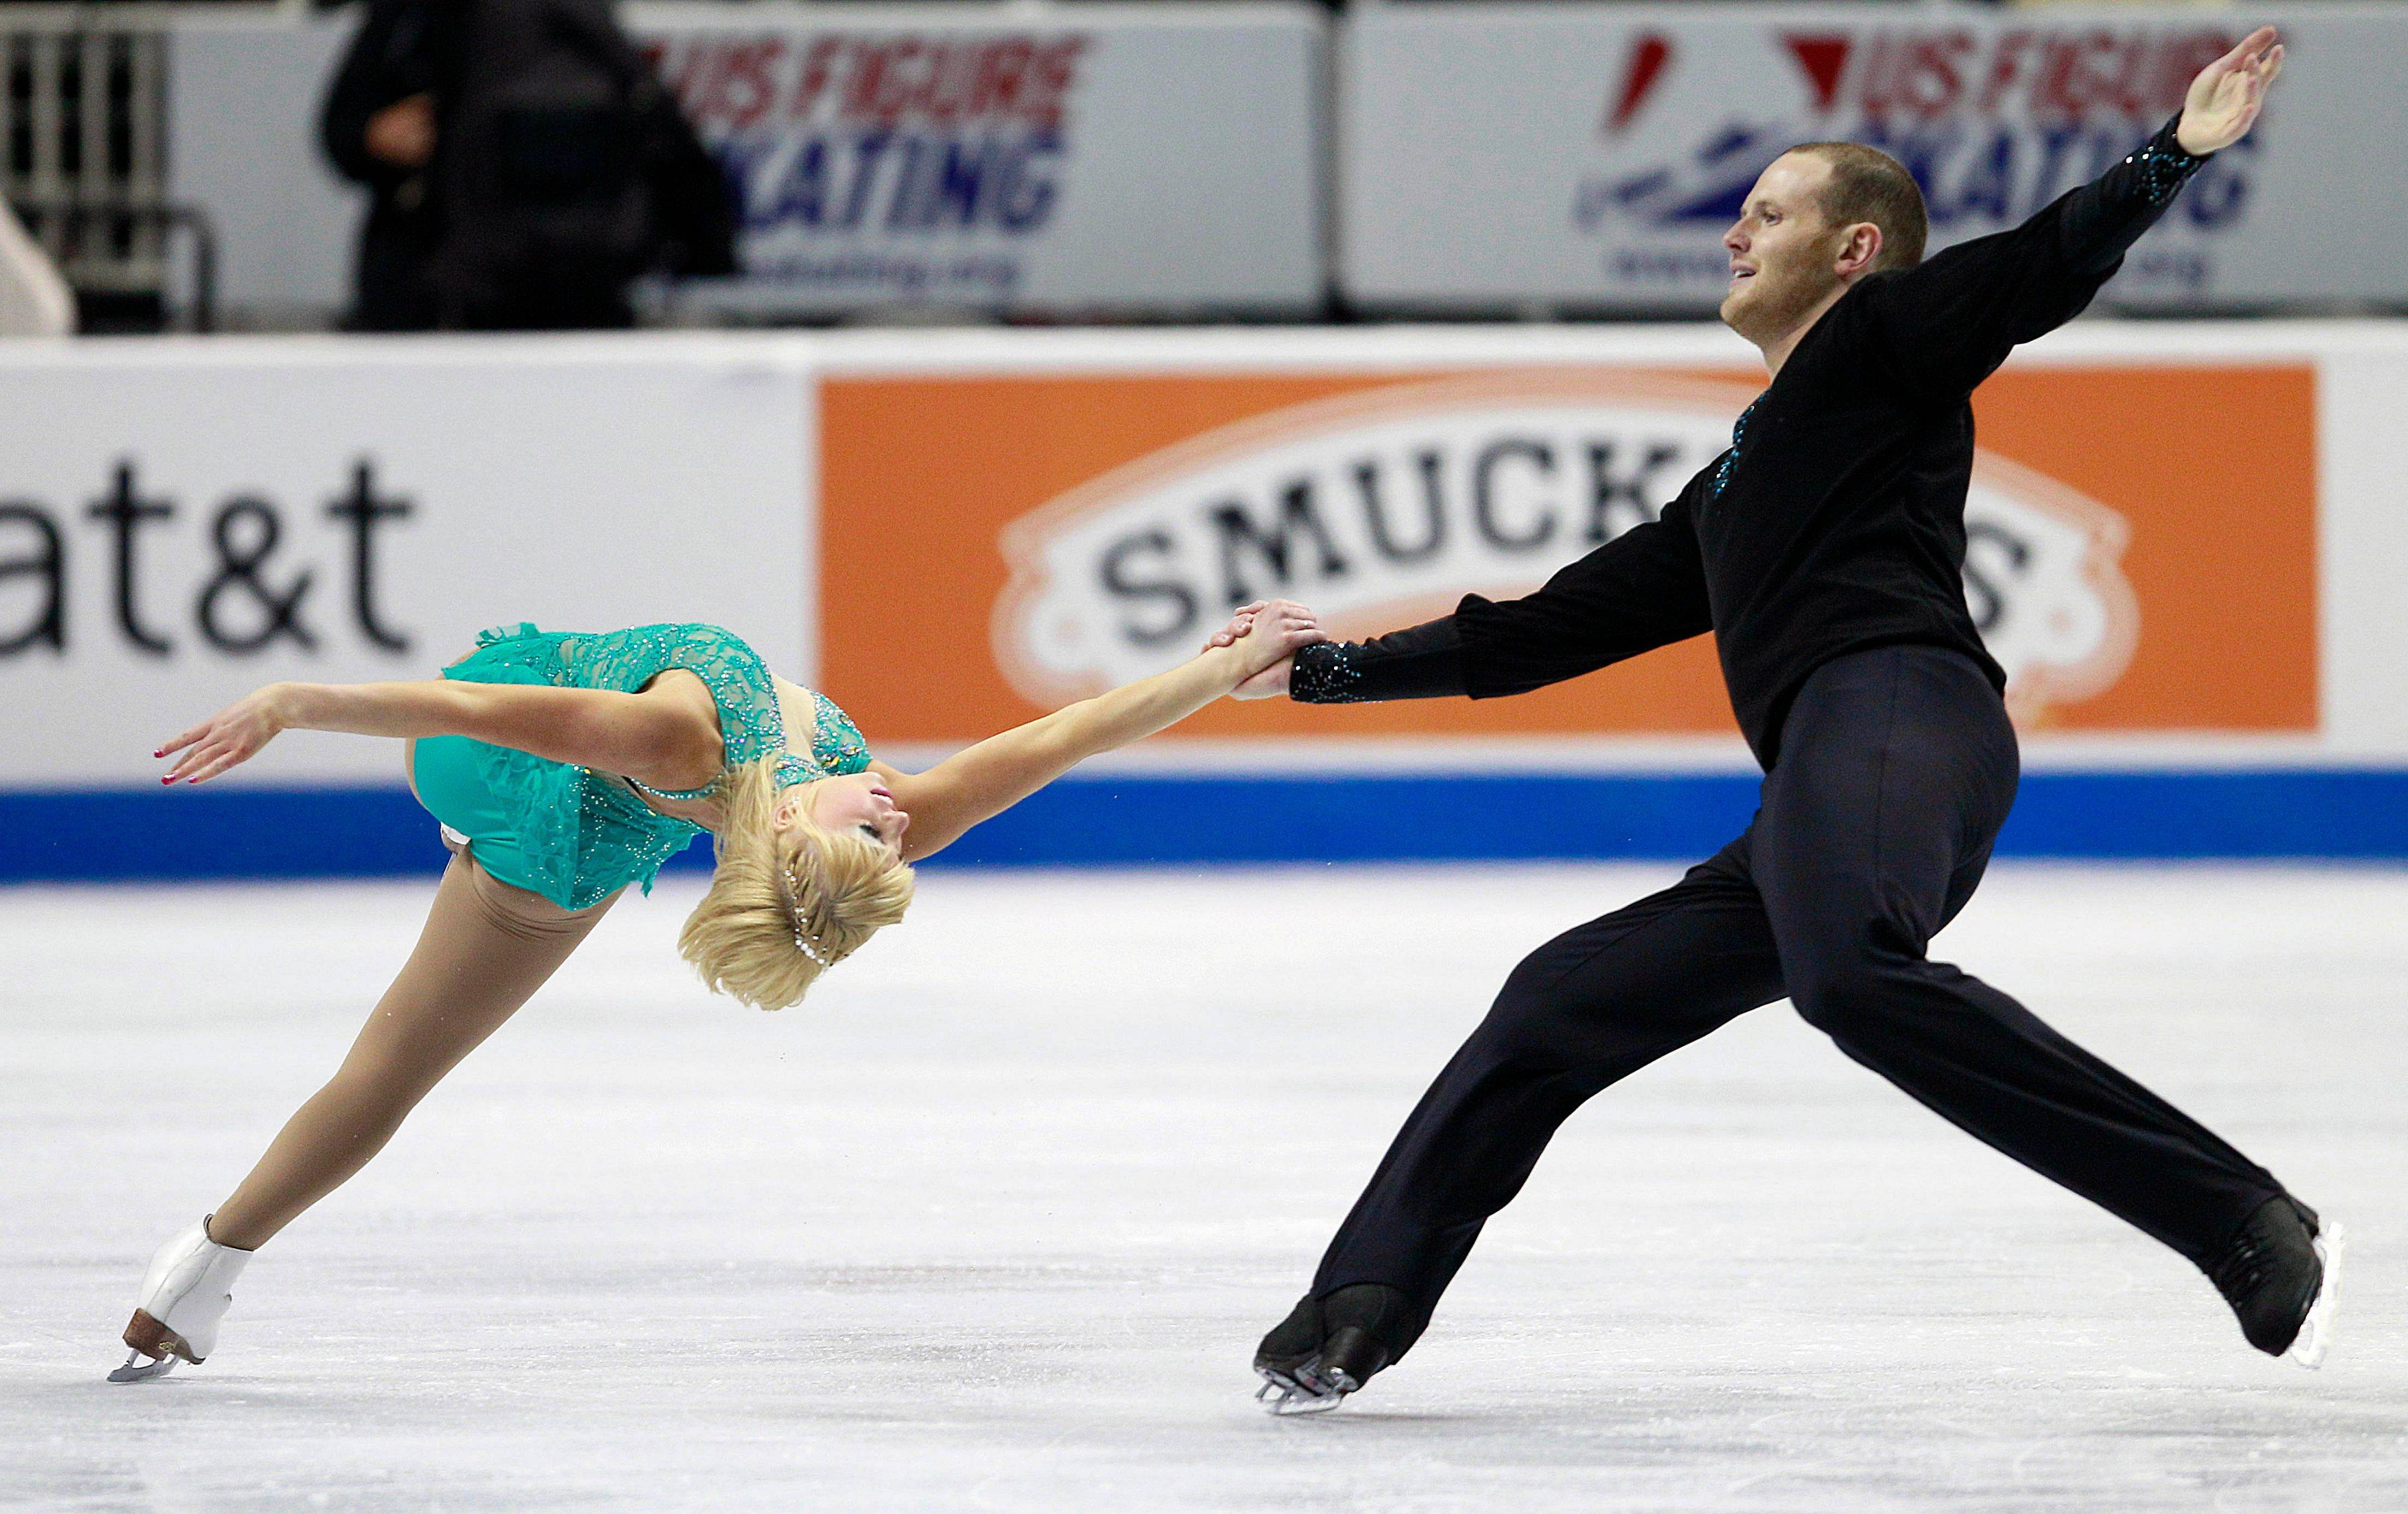 Caydee Denney and John Coughlin show their style at the U.S. Figure Skating Championships in San Jose, Calif., Sunday. They won the pairs competition with a near flawless routine.